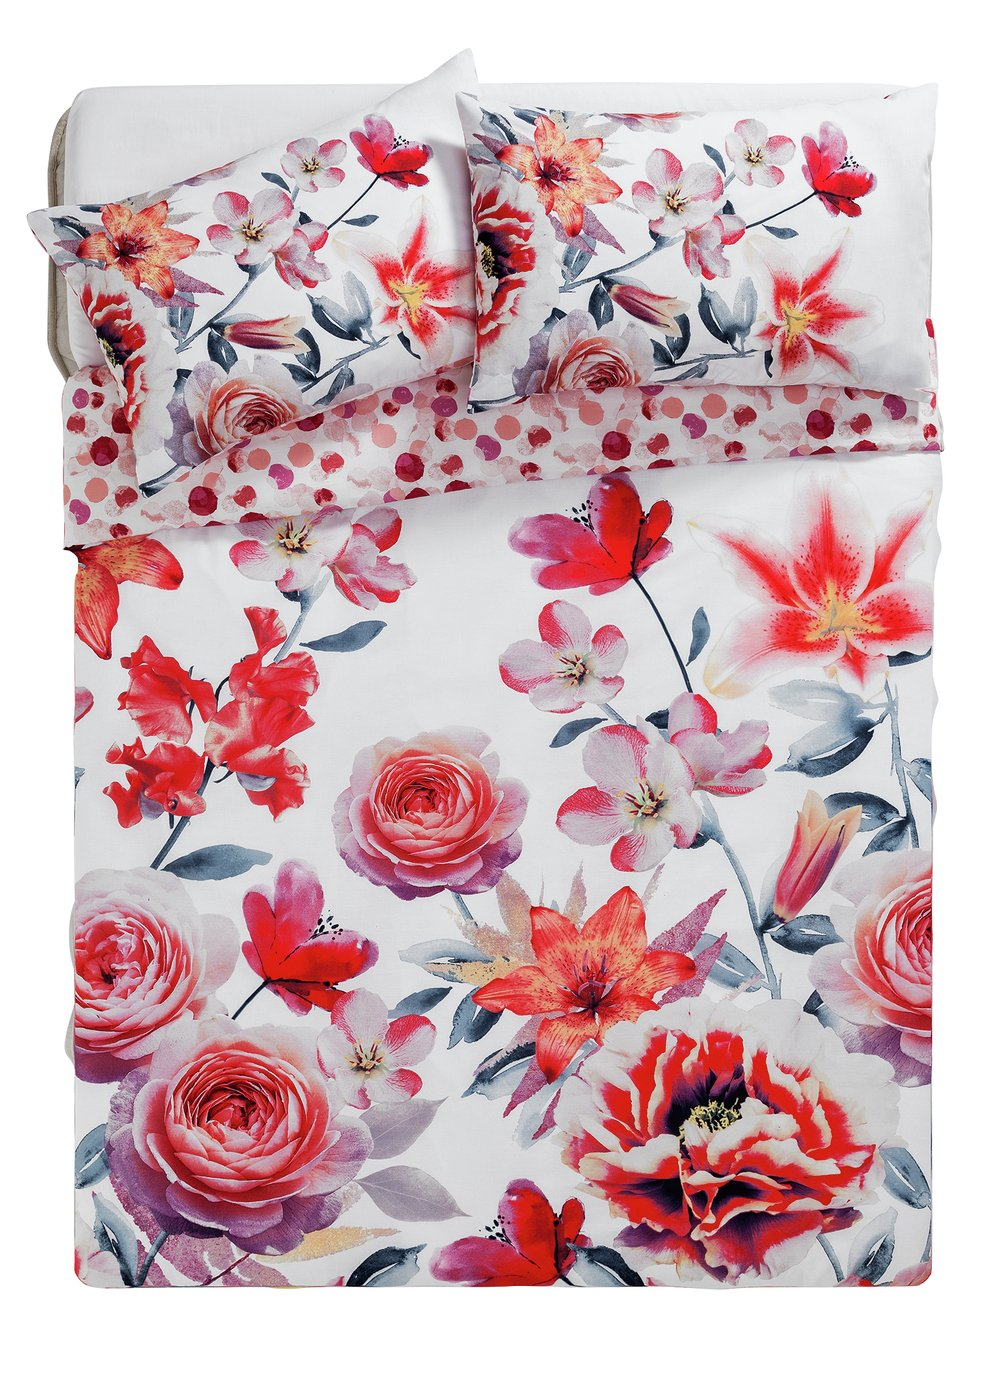 HOME Lily Graphic Floral Bedding Set - Kingsize